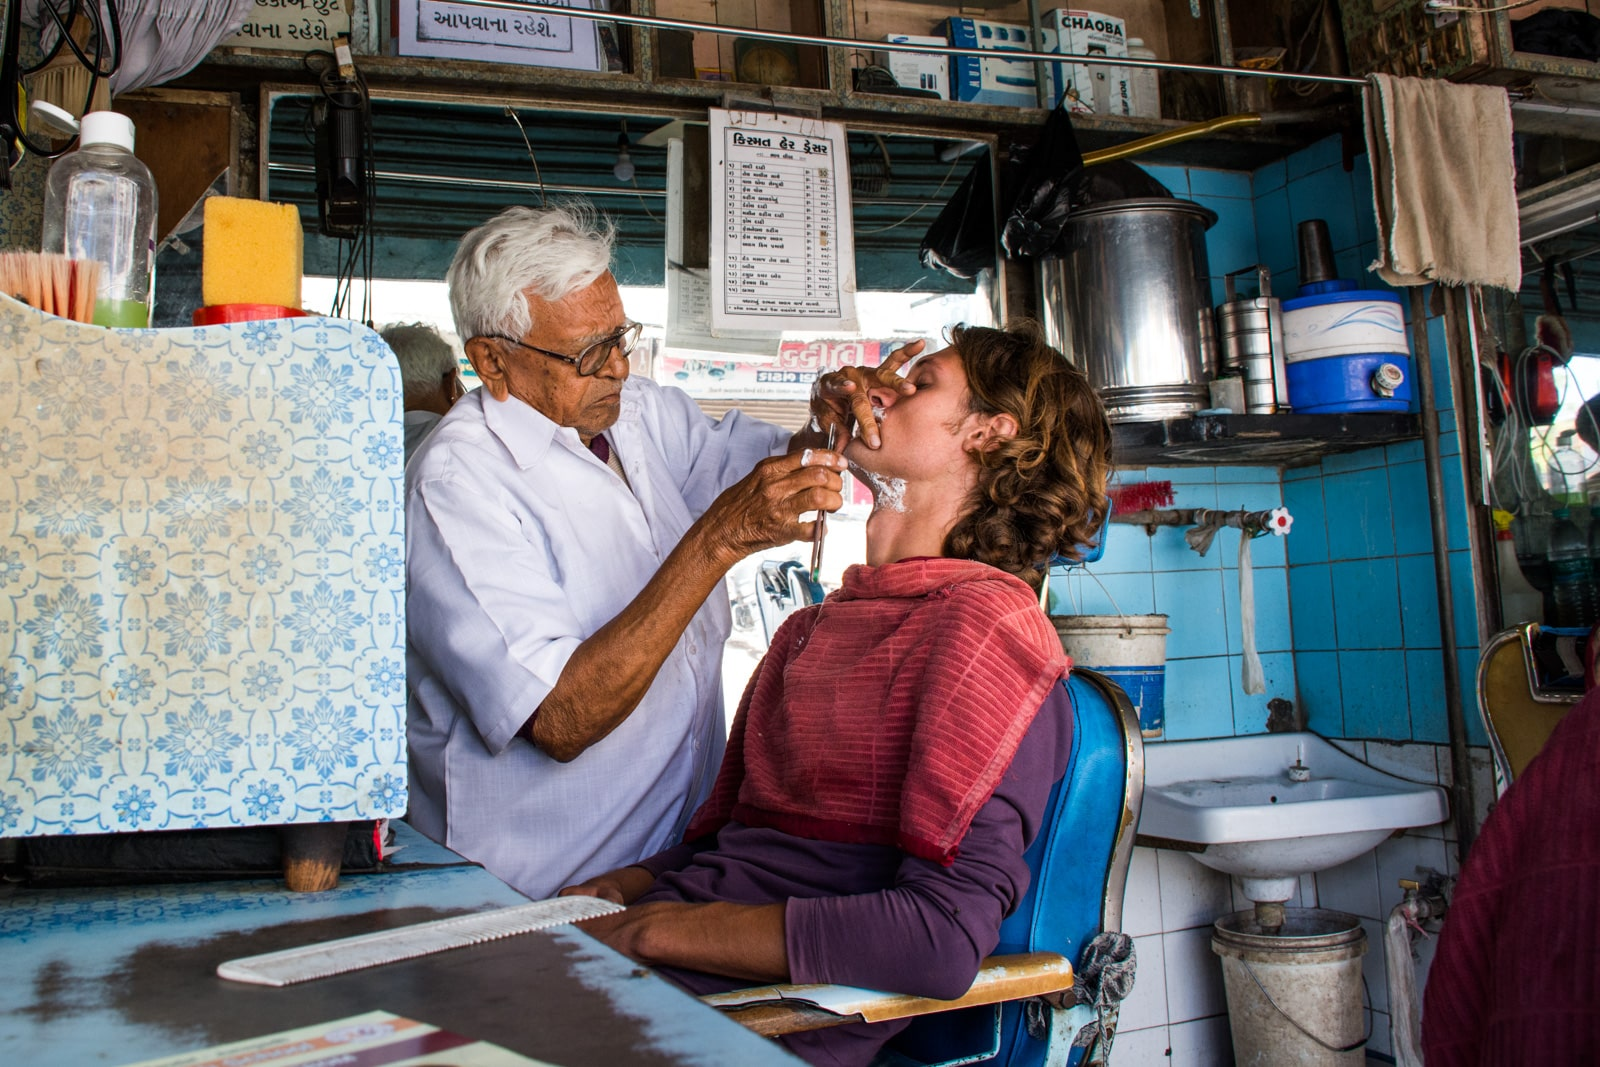 Why we fell in love with India - Getting a shave in Junagadh, Gujarat state, india - Lost With Purpose travel blog